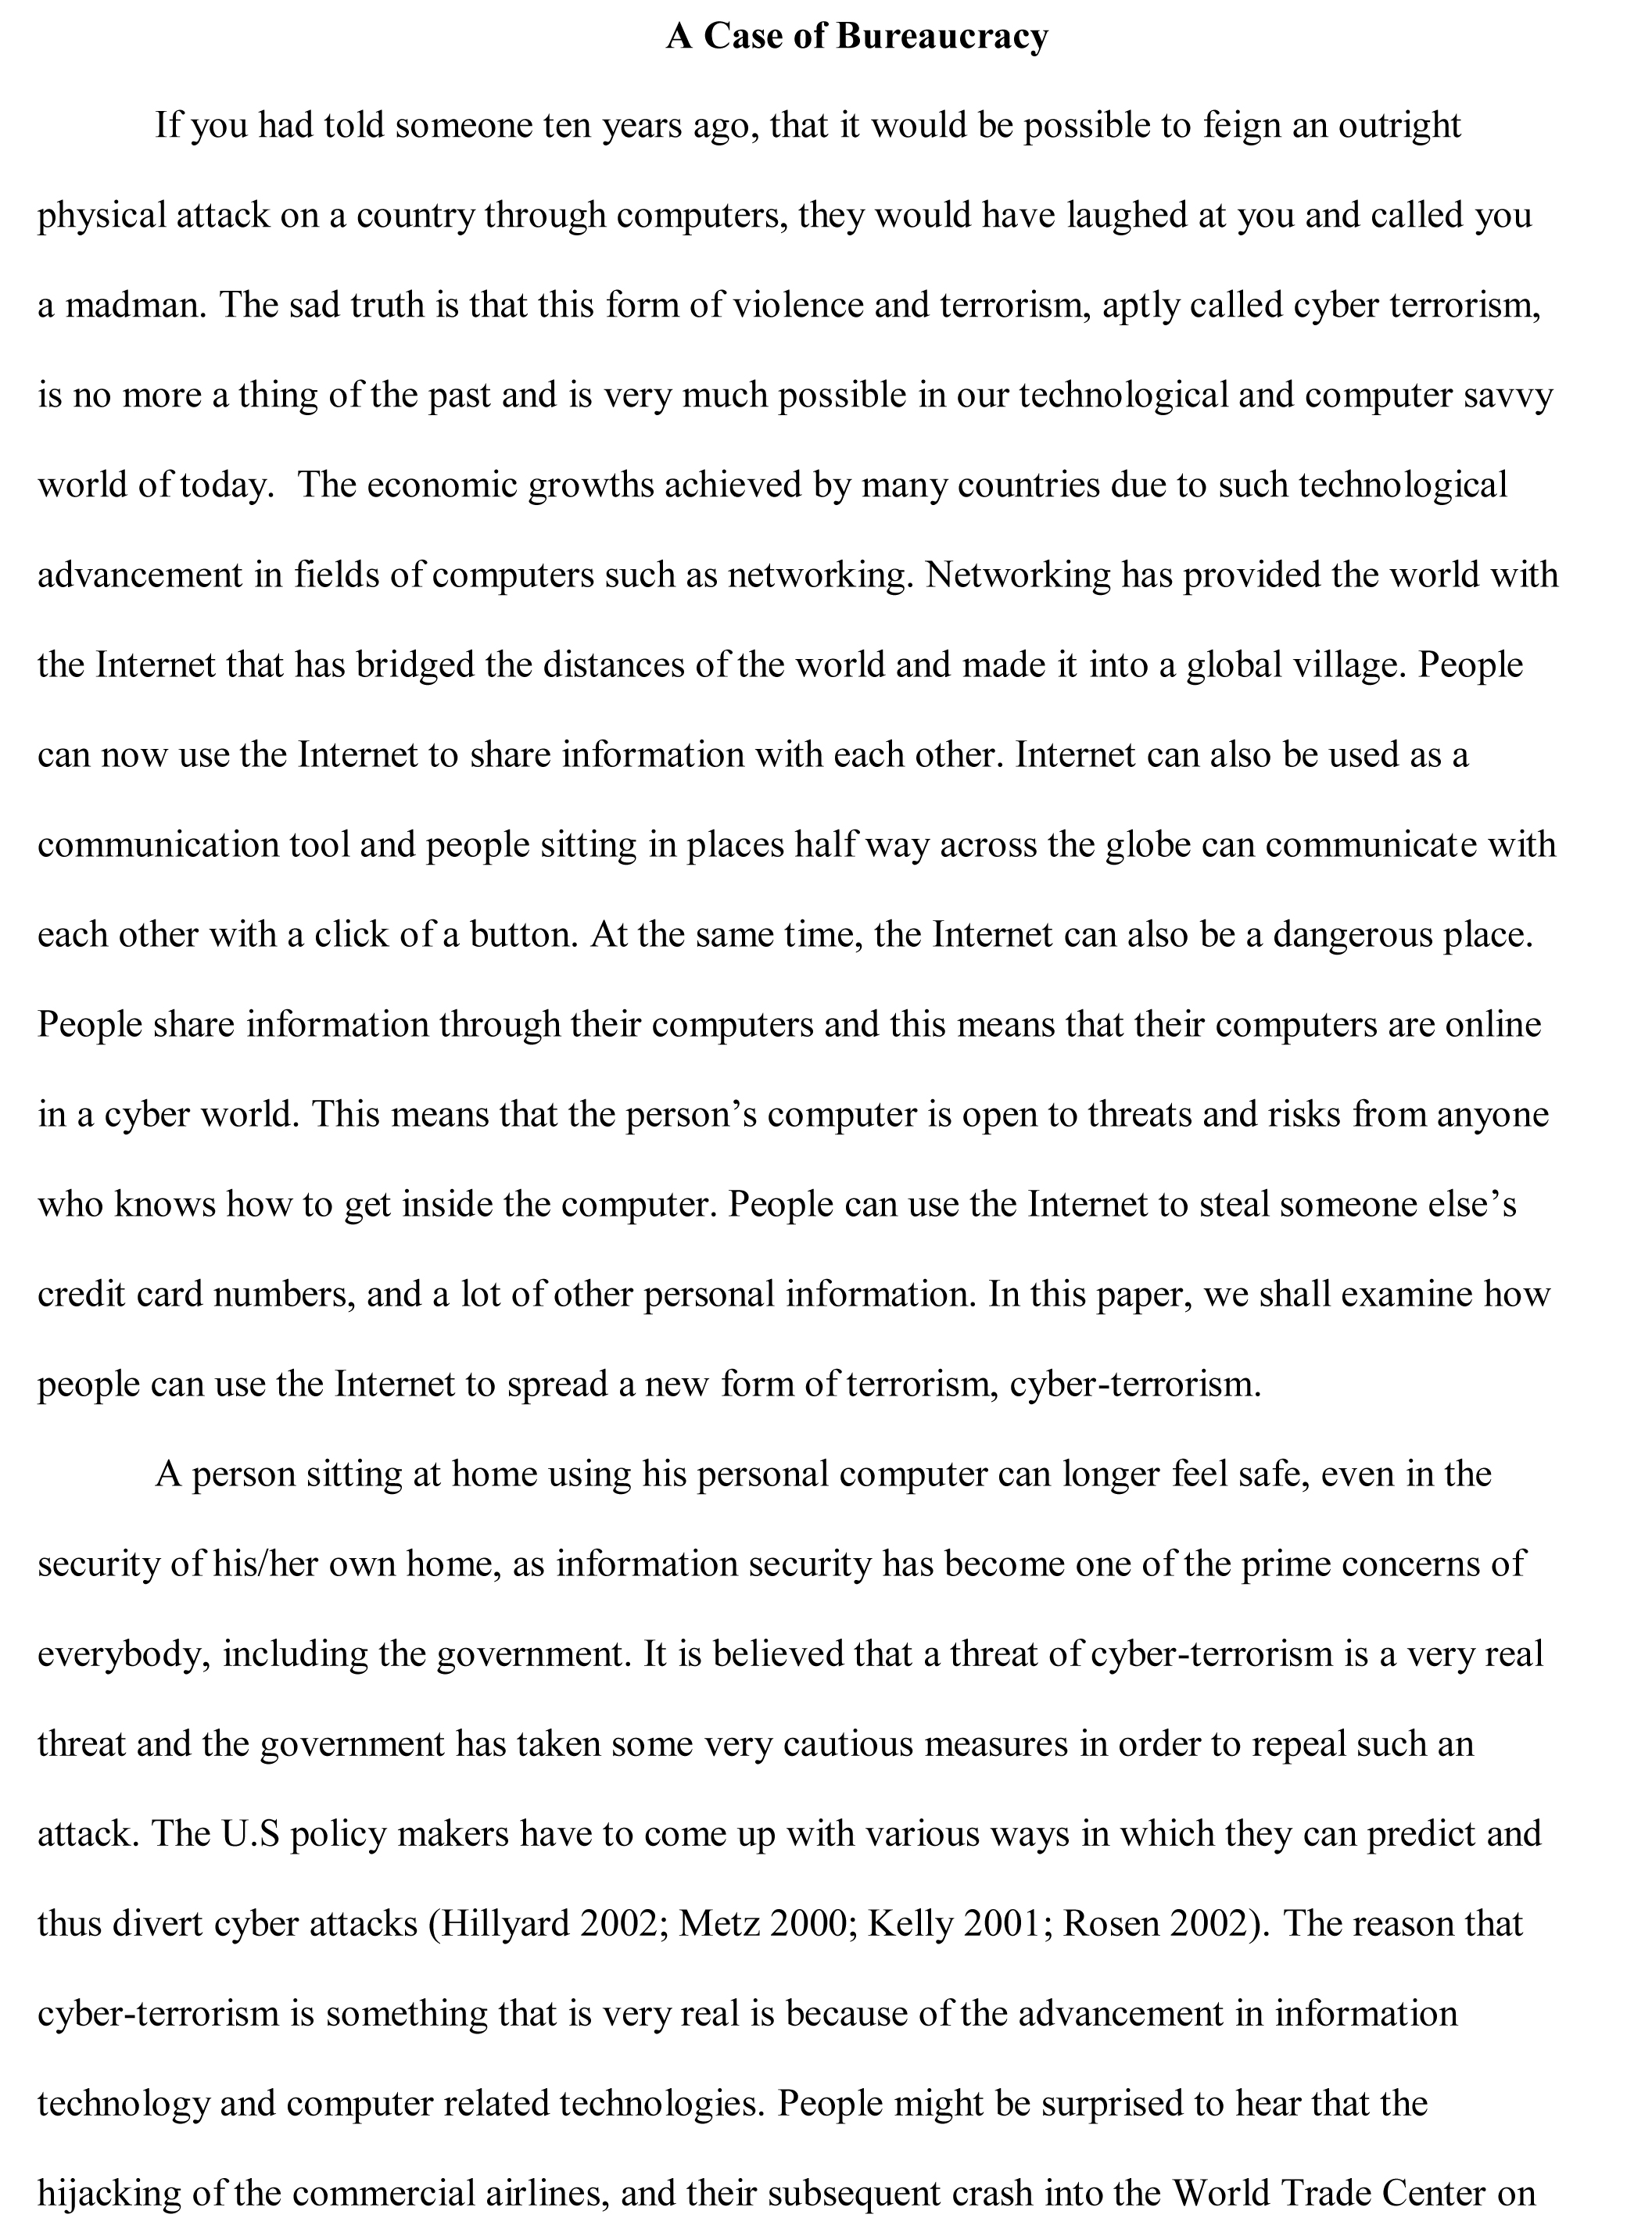 001 Rsearch Paper Free Sample Essay Example Imposing Research Format Full